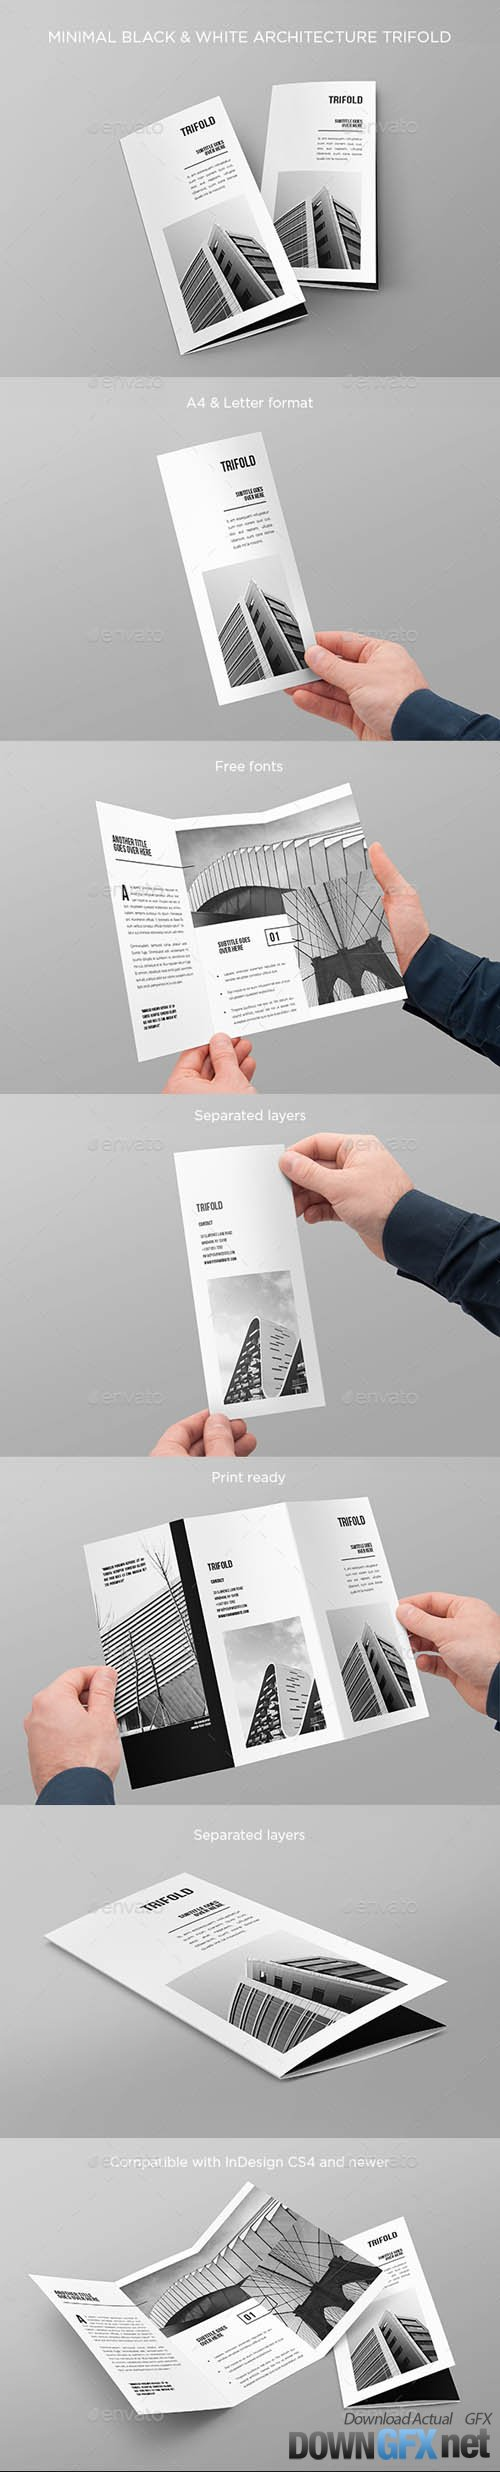 Minimal Black & White Architecture Trifold 20512162